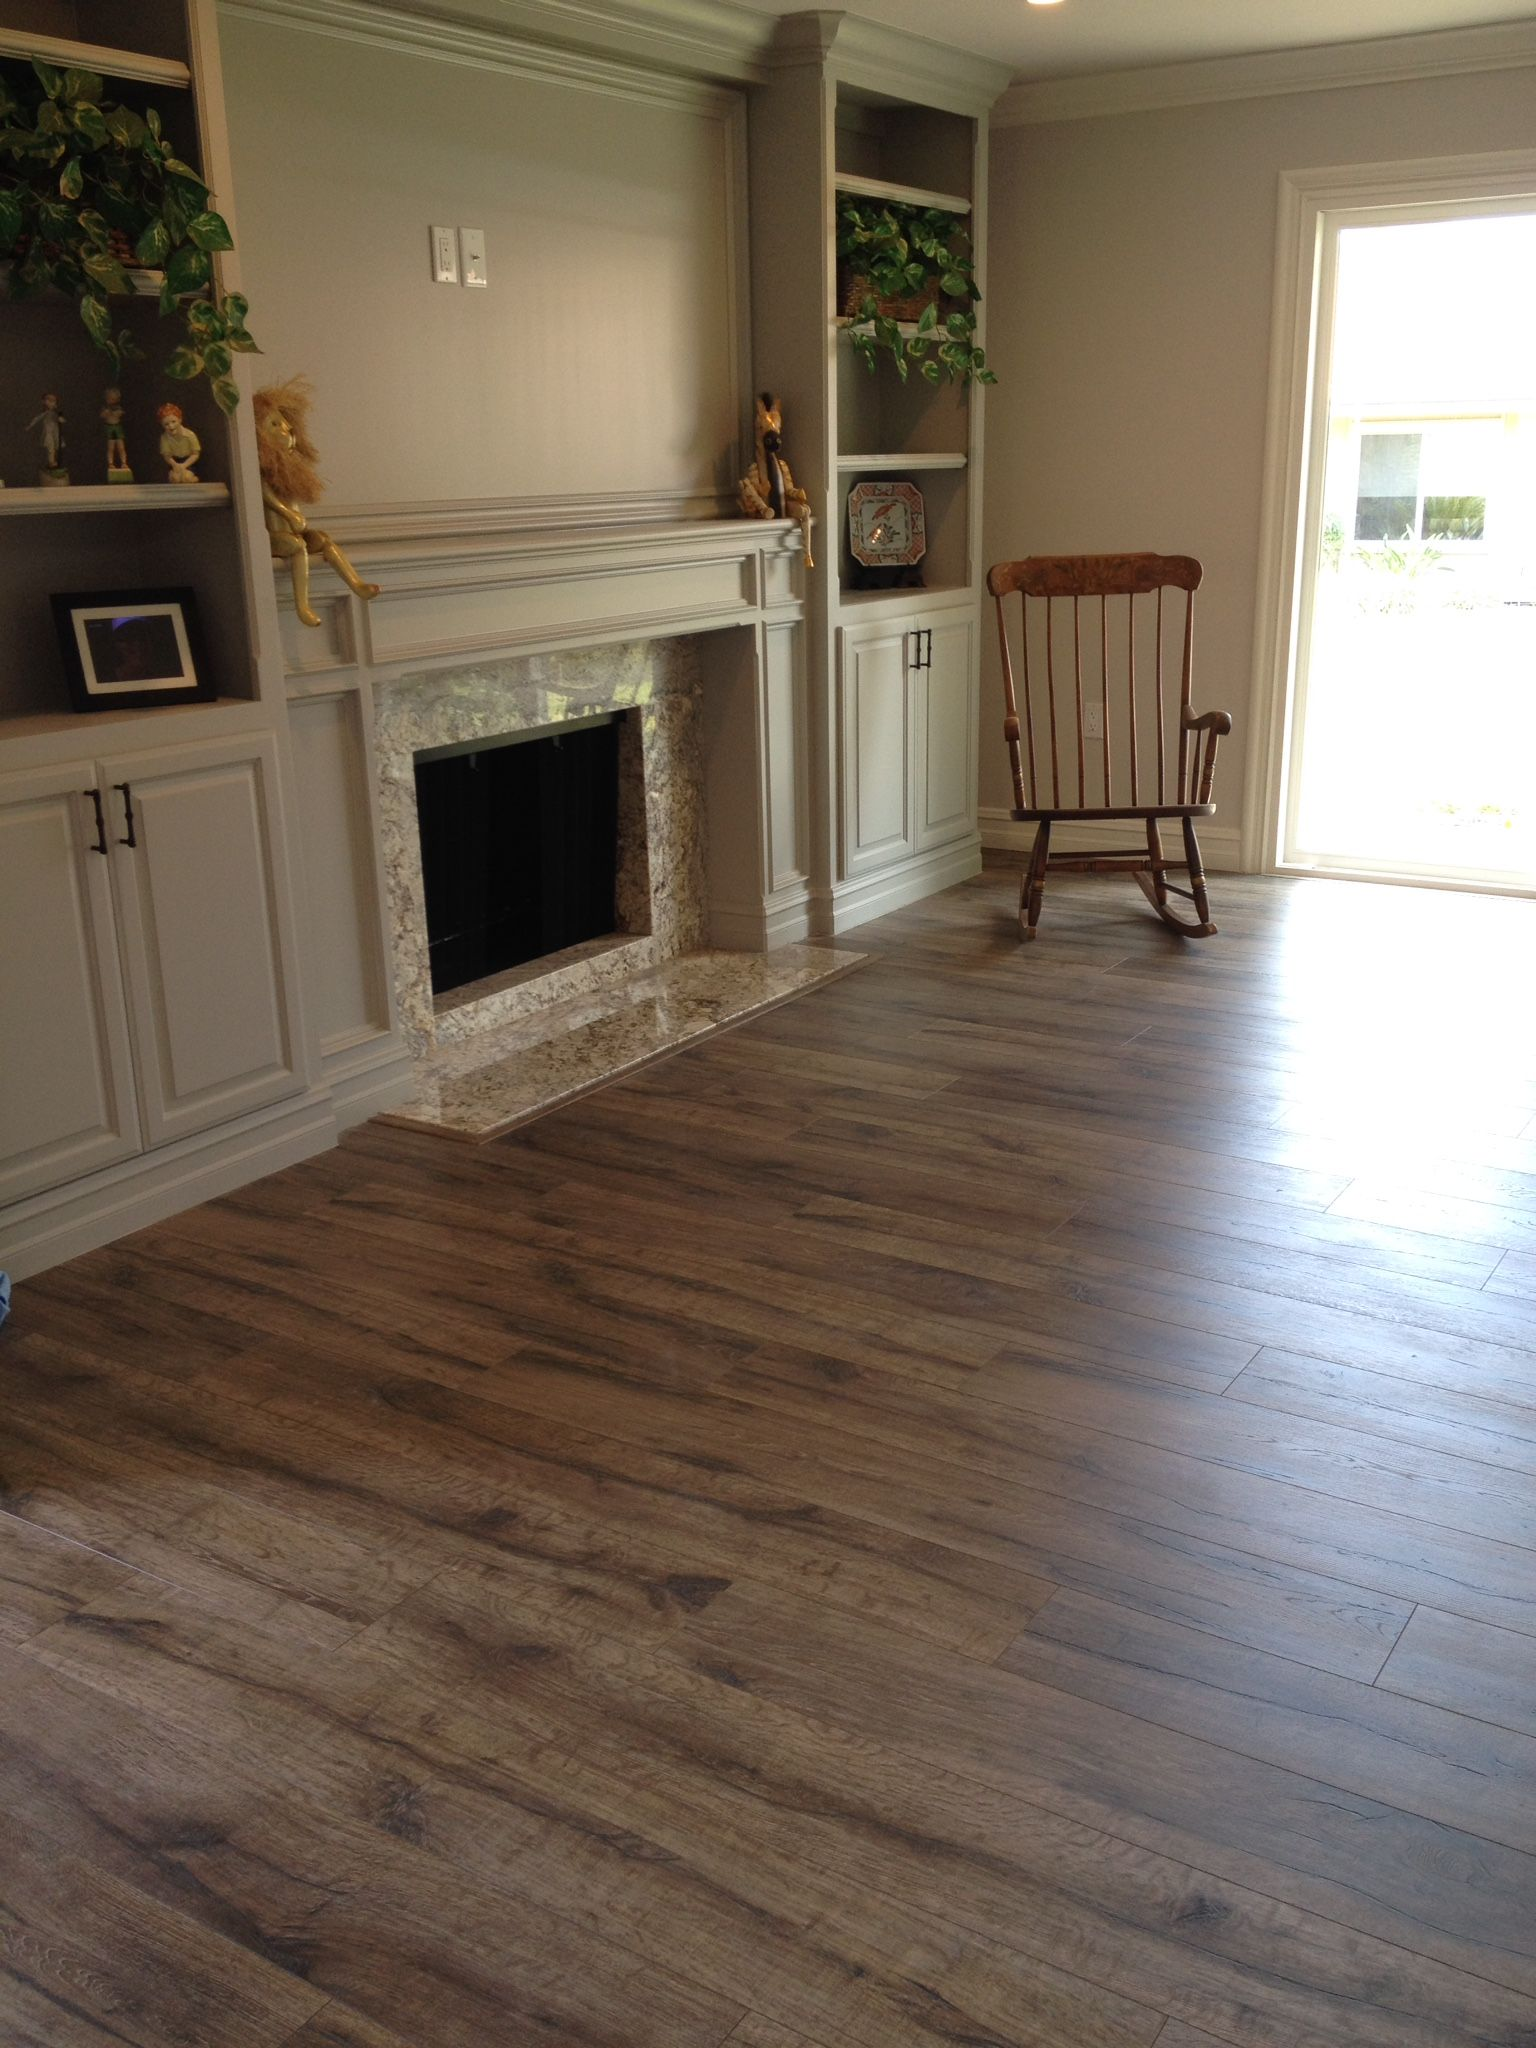 QuickStep Heathered Oak looks in Caren B.'s